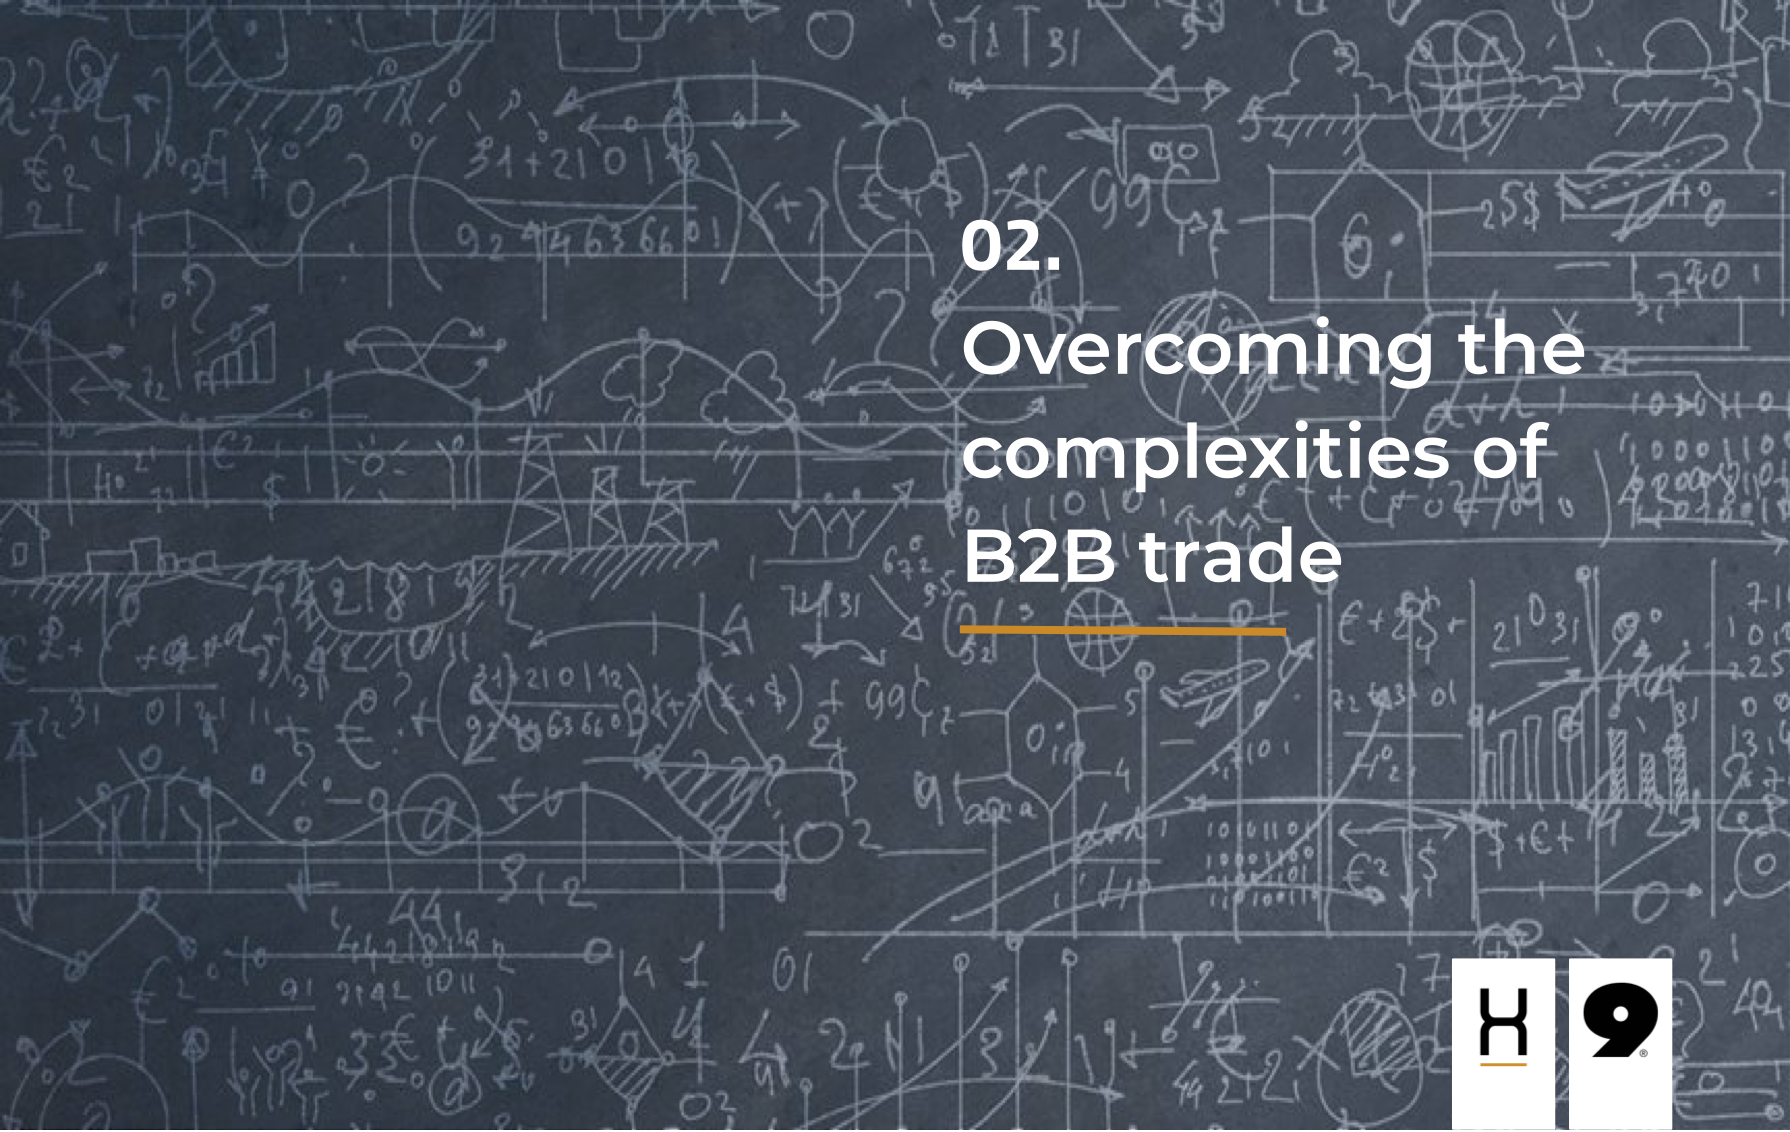 Overcoming the complexities of B2B trade